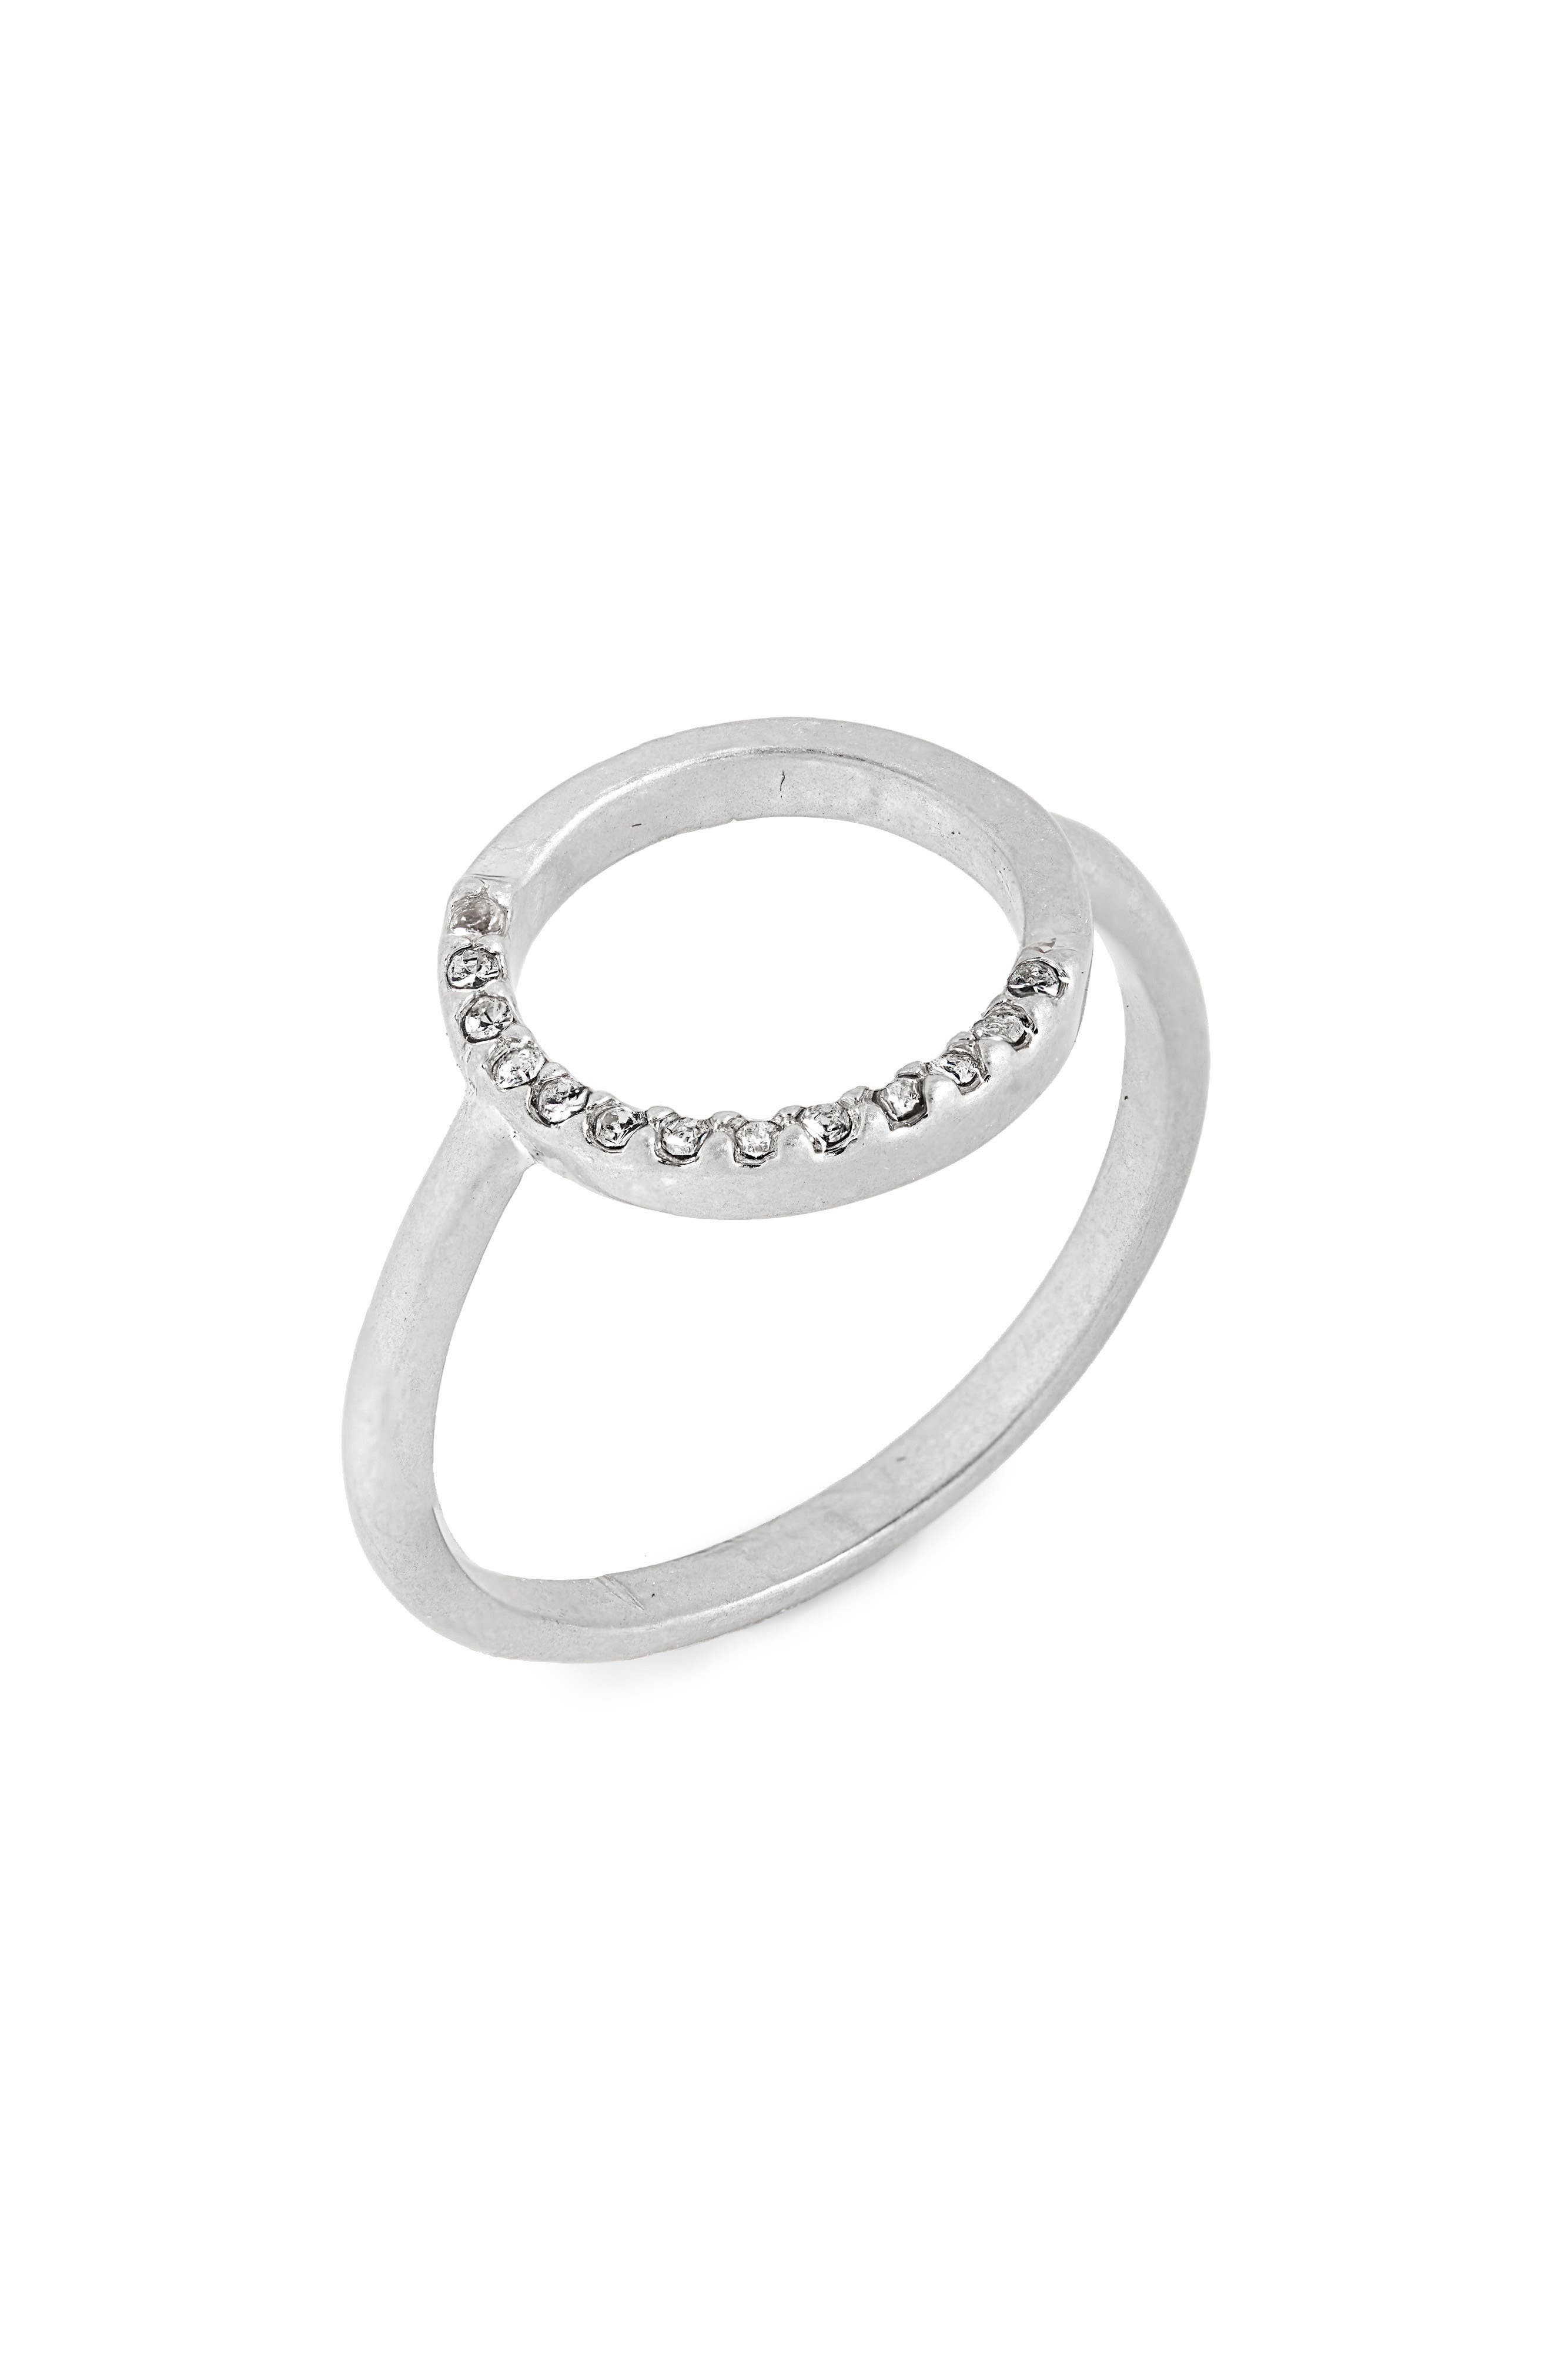 MADEWELL, Luster Circle Pavé Ring, Main thumbnail 1, color, LIGHT SILVER OX